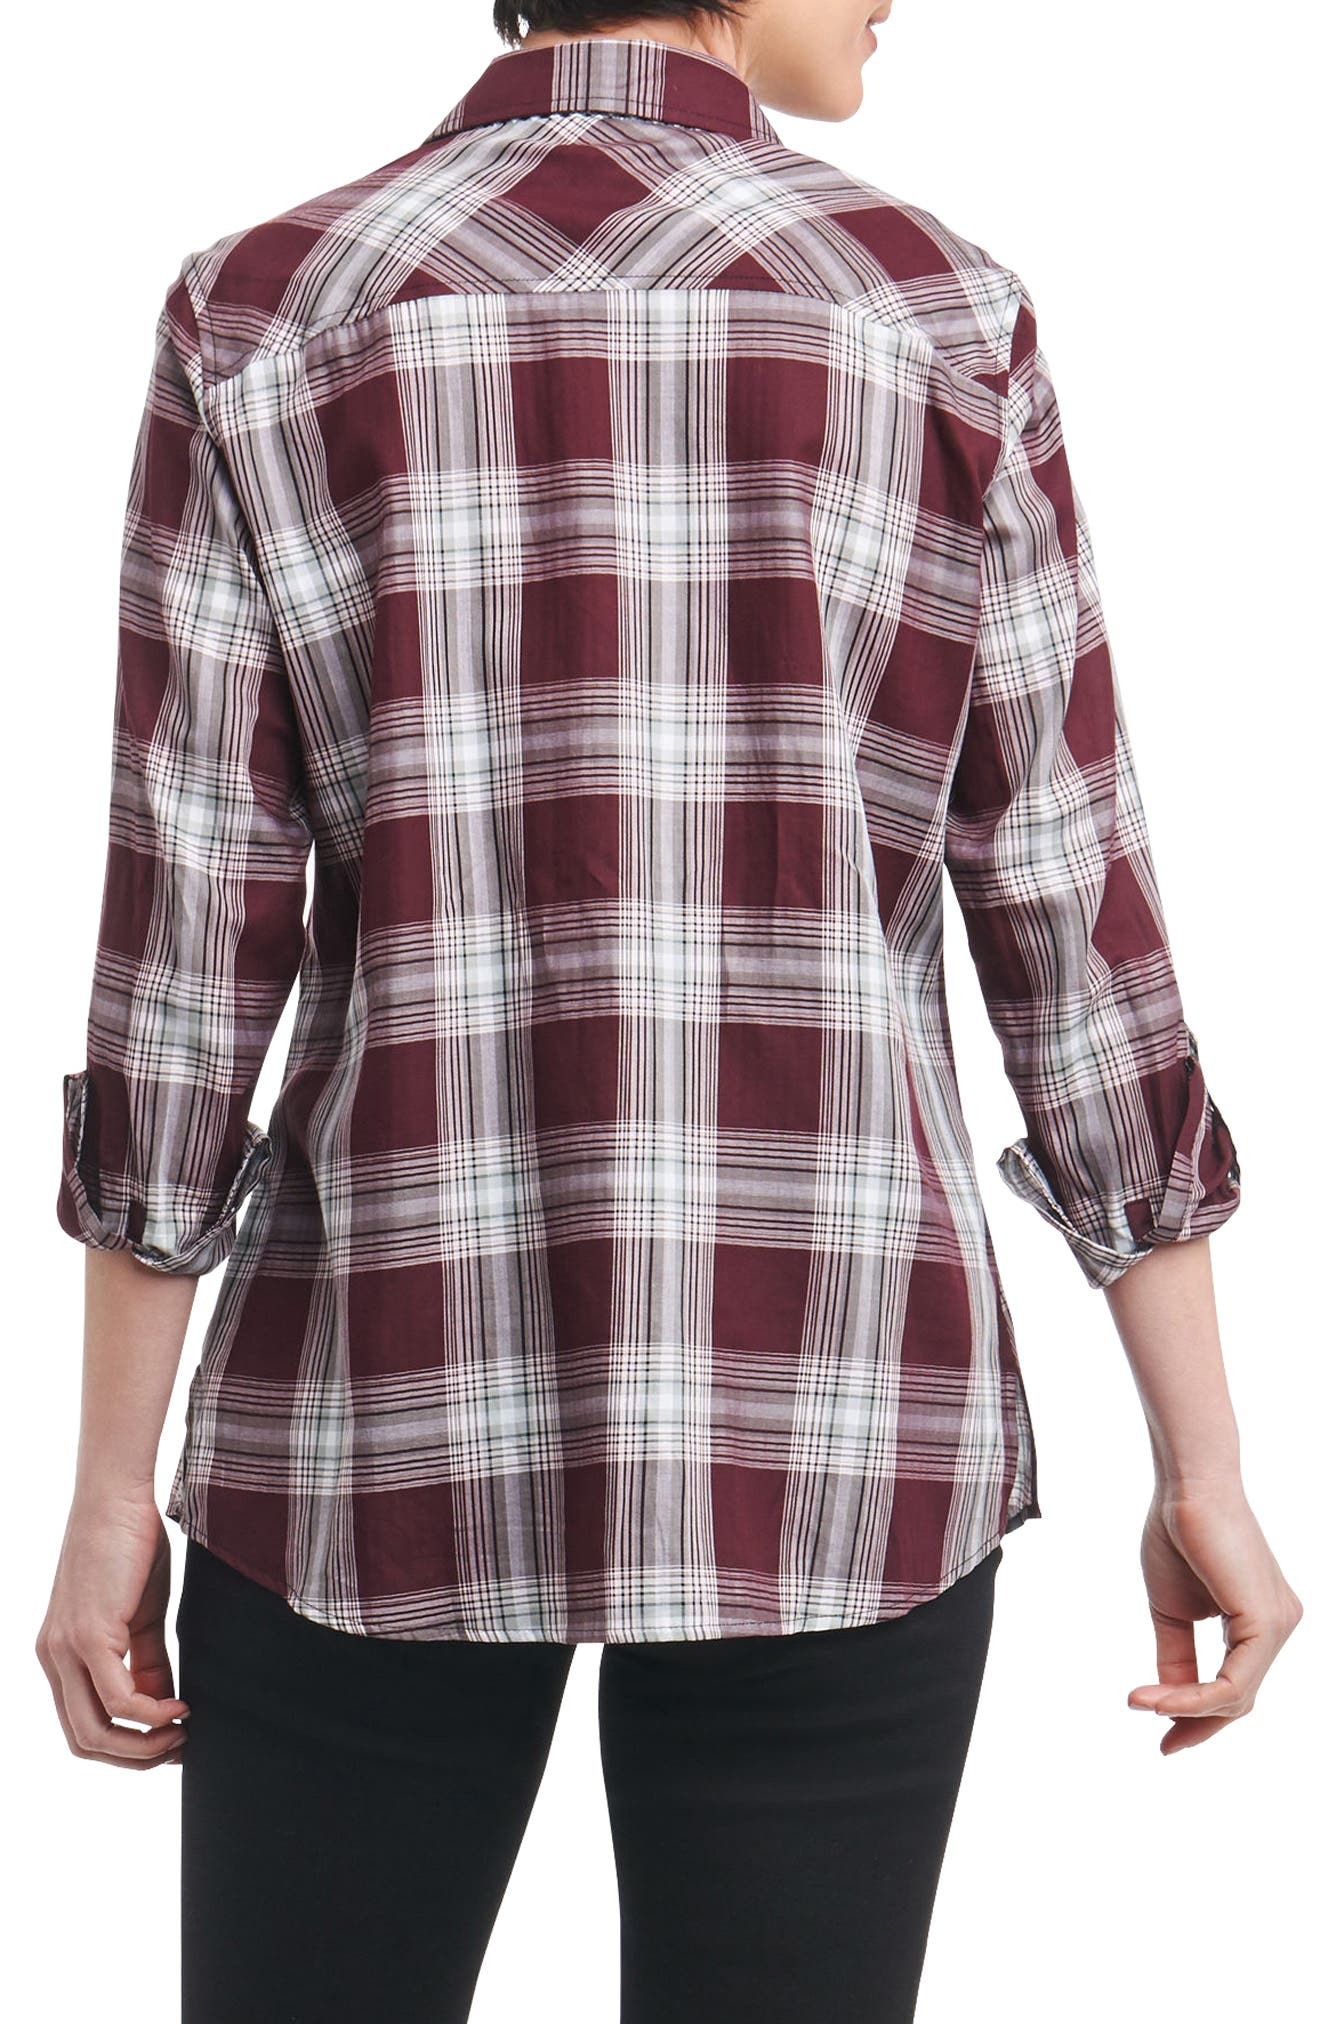 Addison Plaid Shirt,                             Alternate thumbnail 2, color,                             936